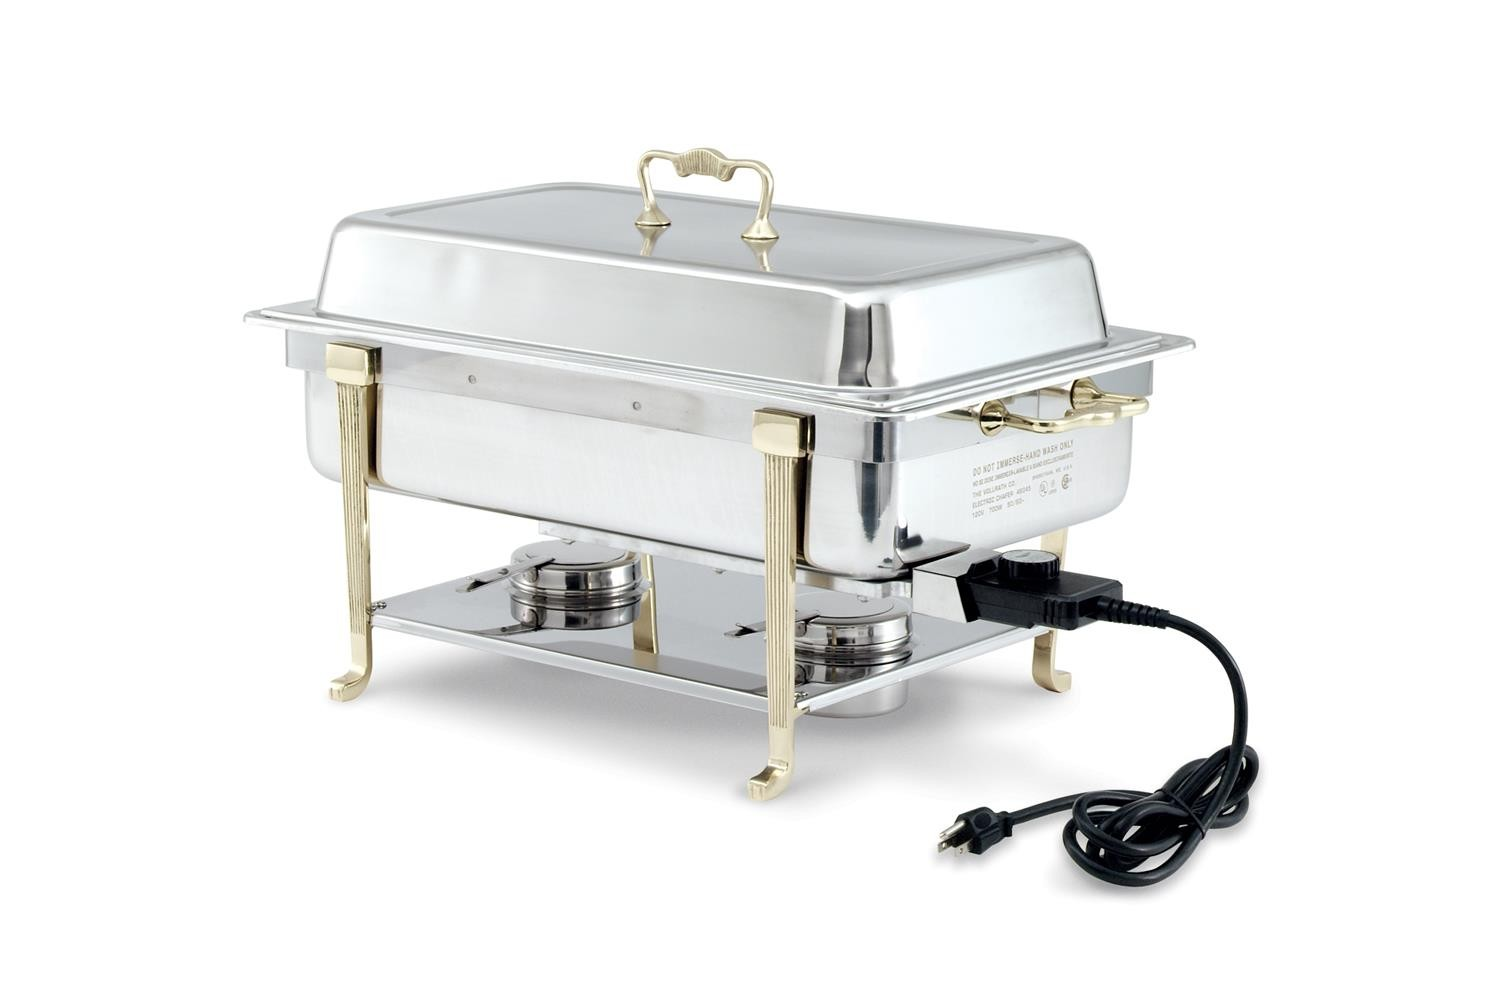 Vollrath 46045 Classic Brass Trim Full Size Short Side Plug Electric Chafer 9 Qt.